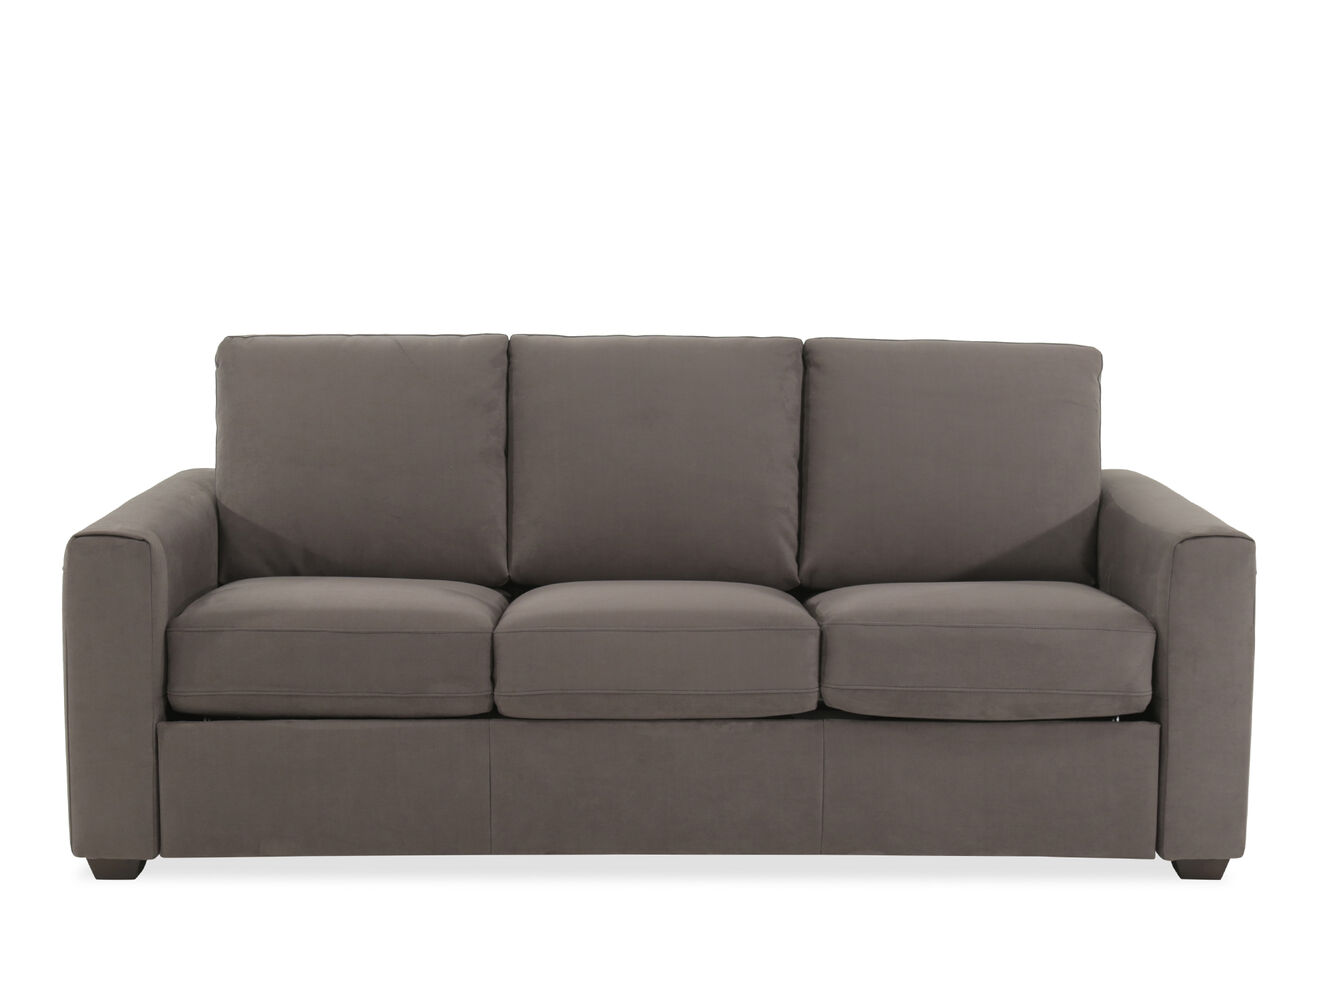 casual 82 queen sleeper sofa in gray mathis brothers furniture. Black Bedroom Furniture Sets. Home Design Ideas